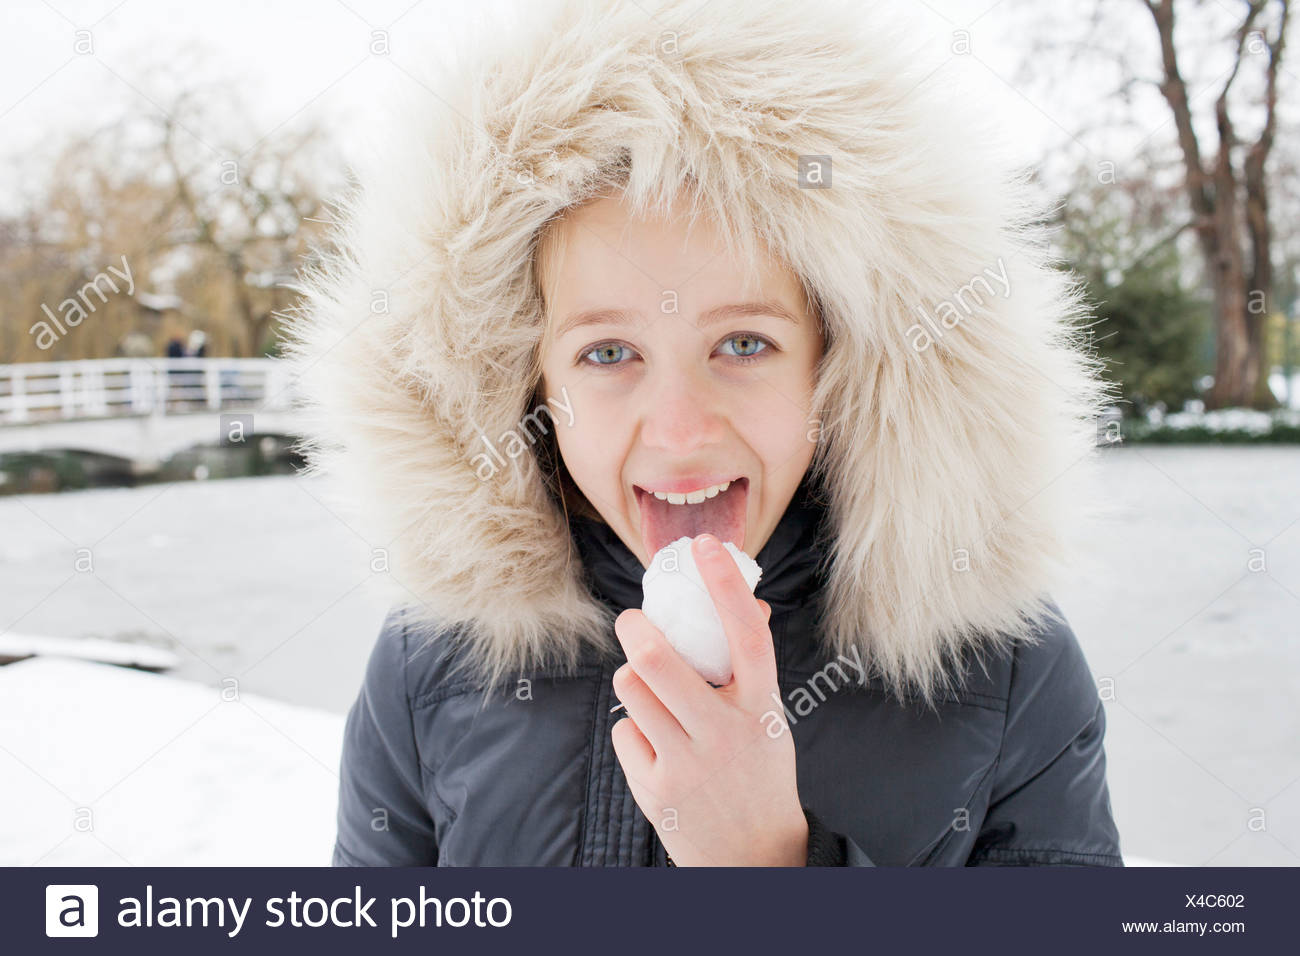 Girl in fur hood licking snow - Stock Image